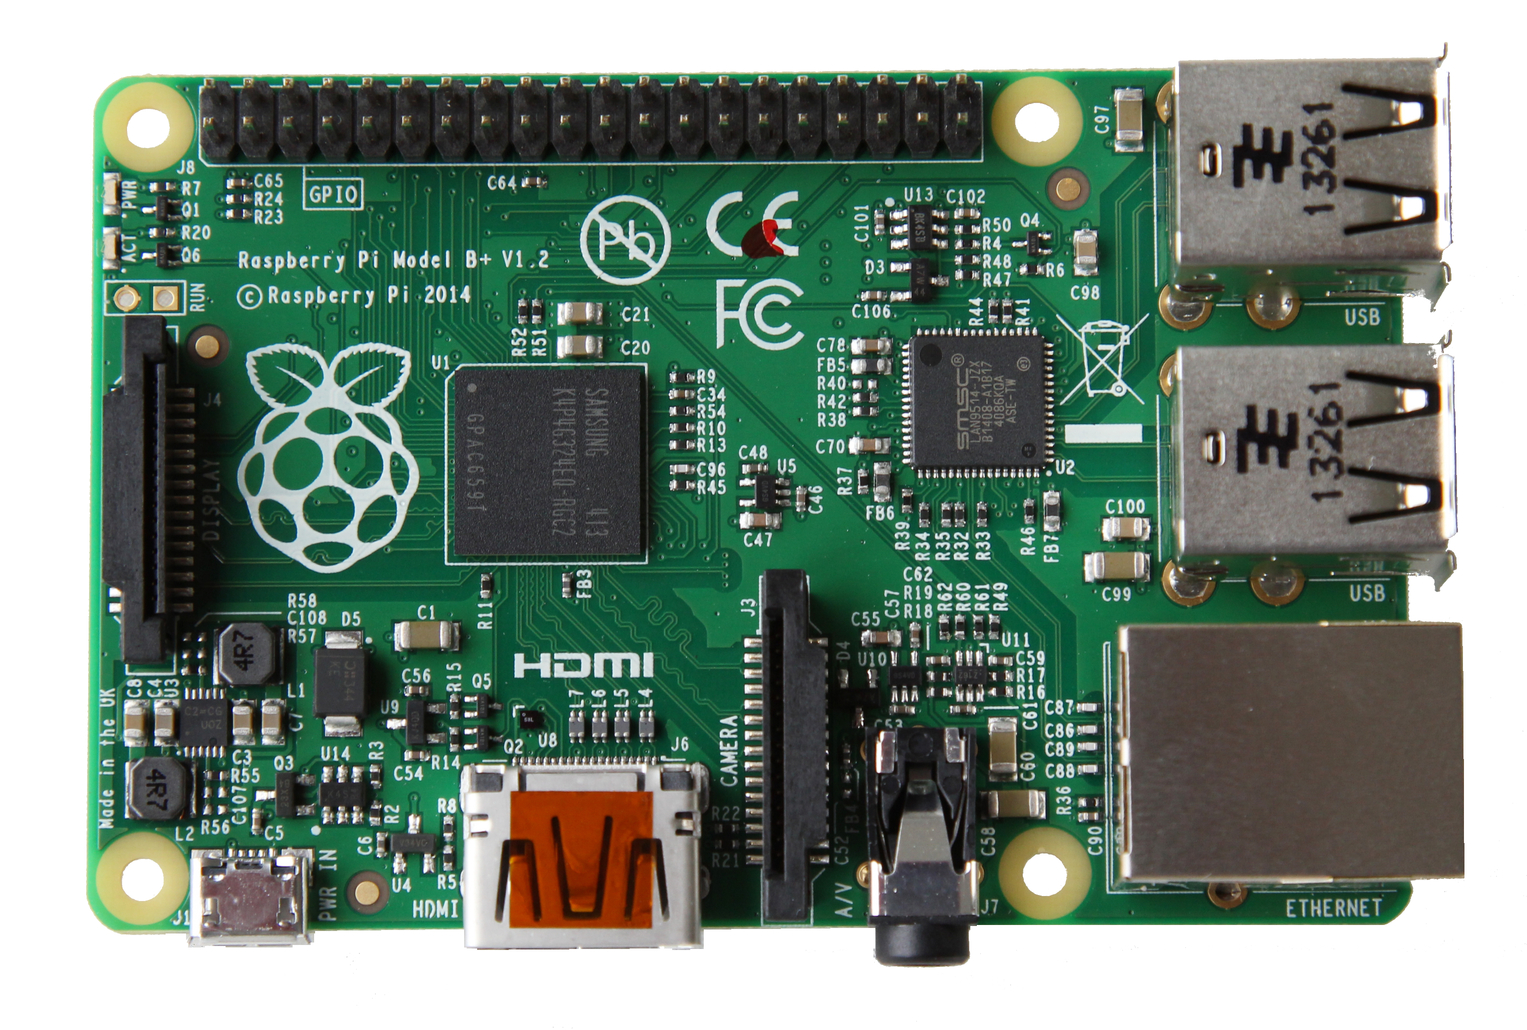 Nou model de Raspberry Pi, el B+